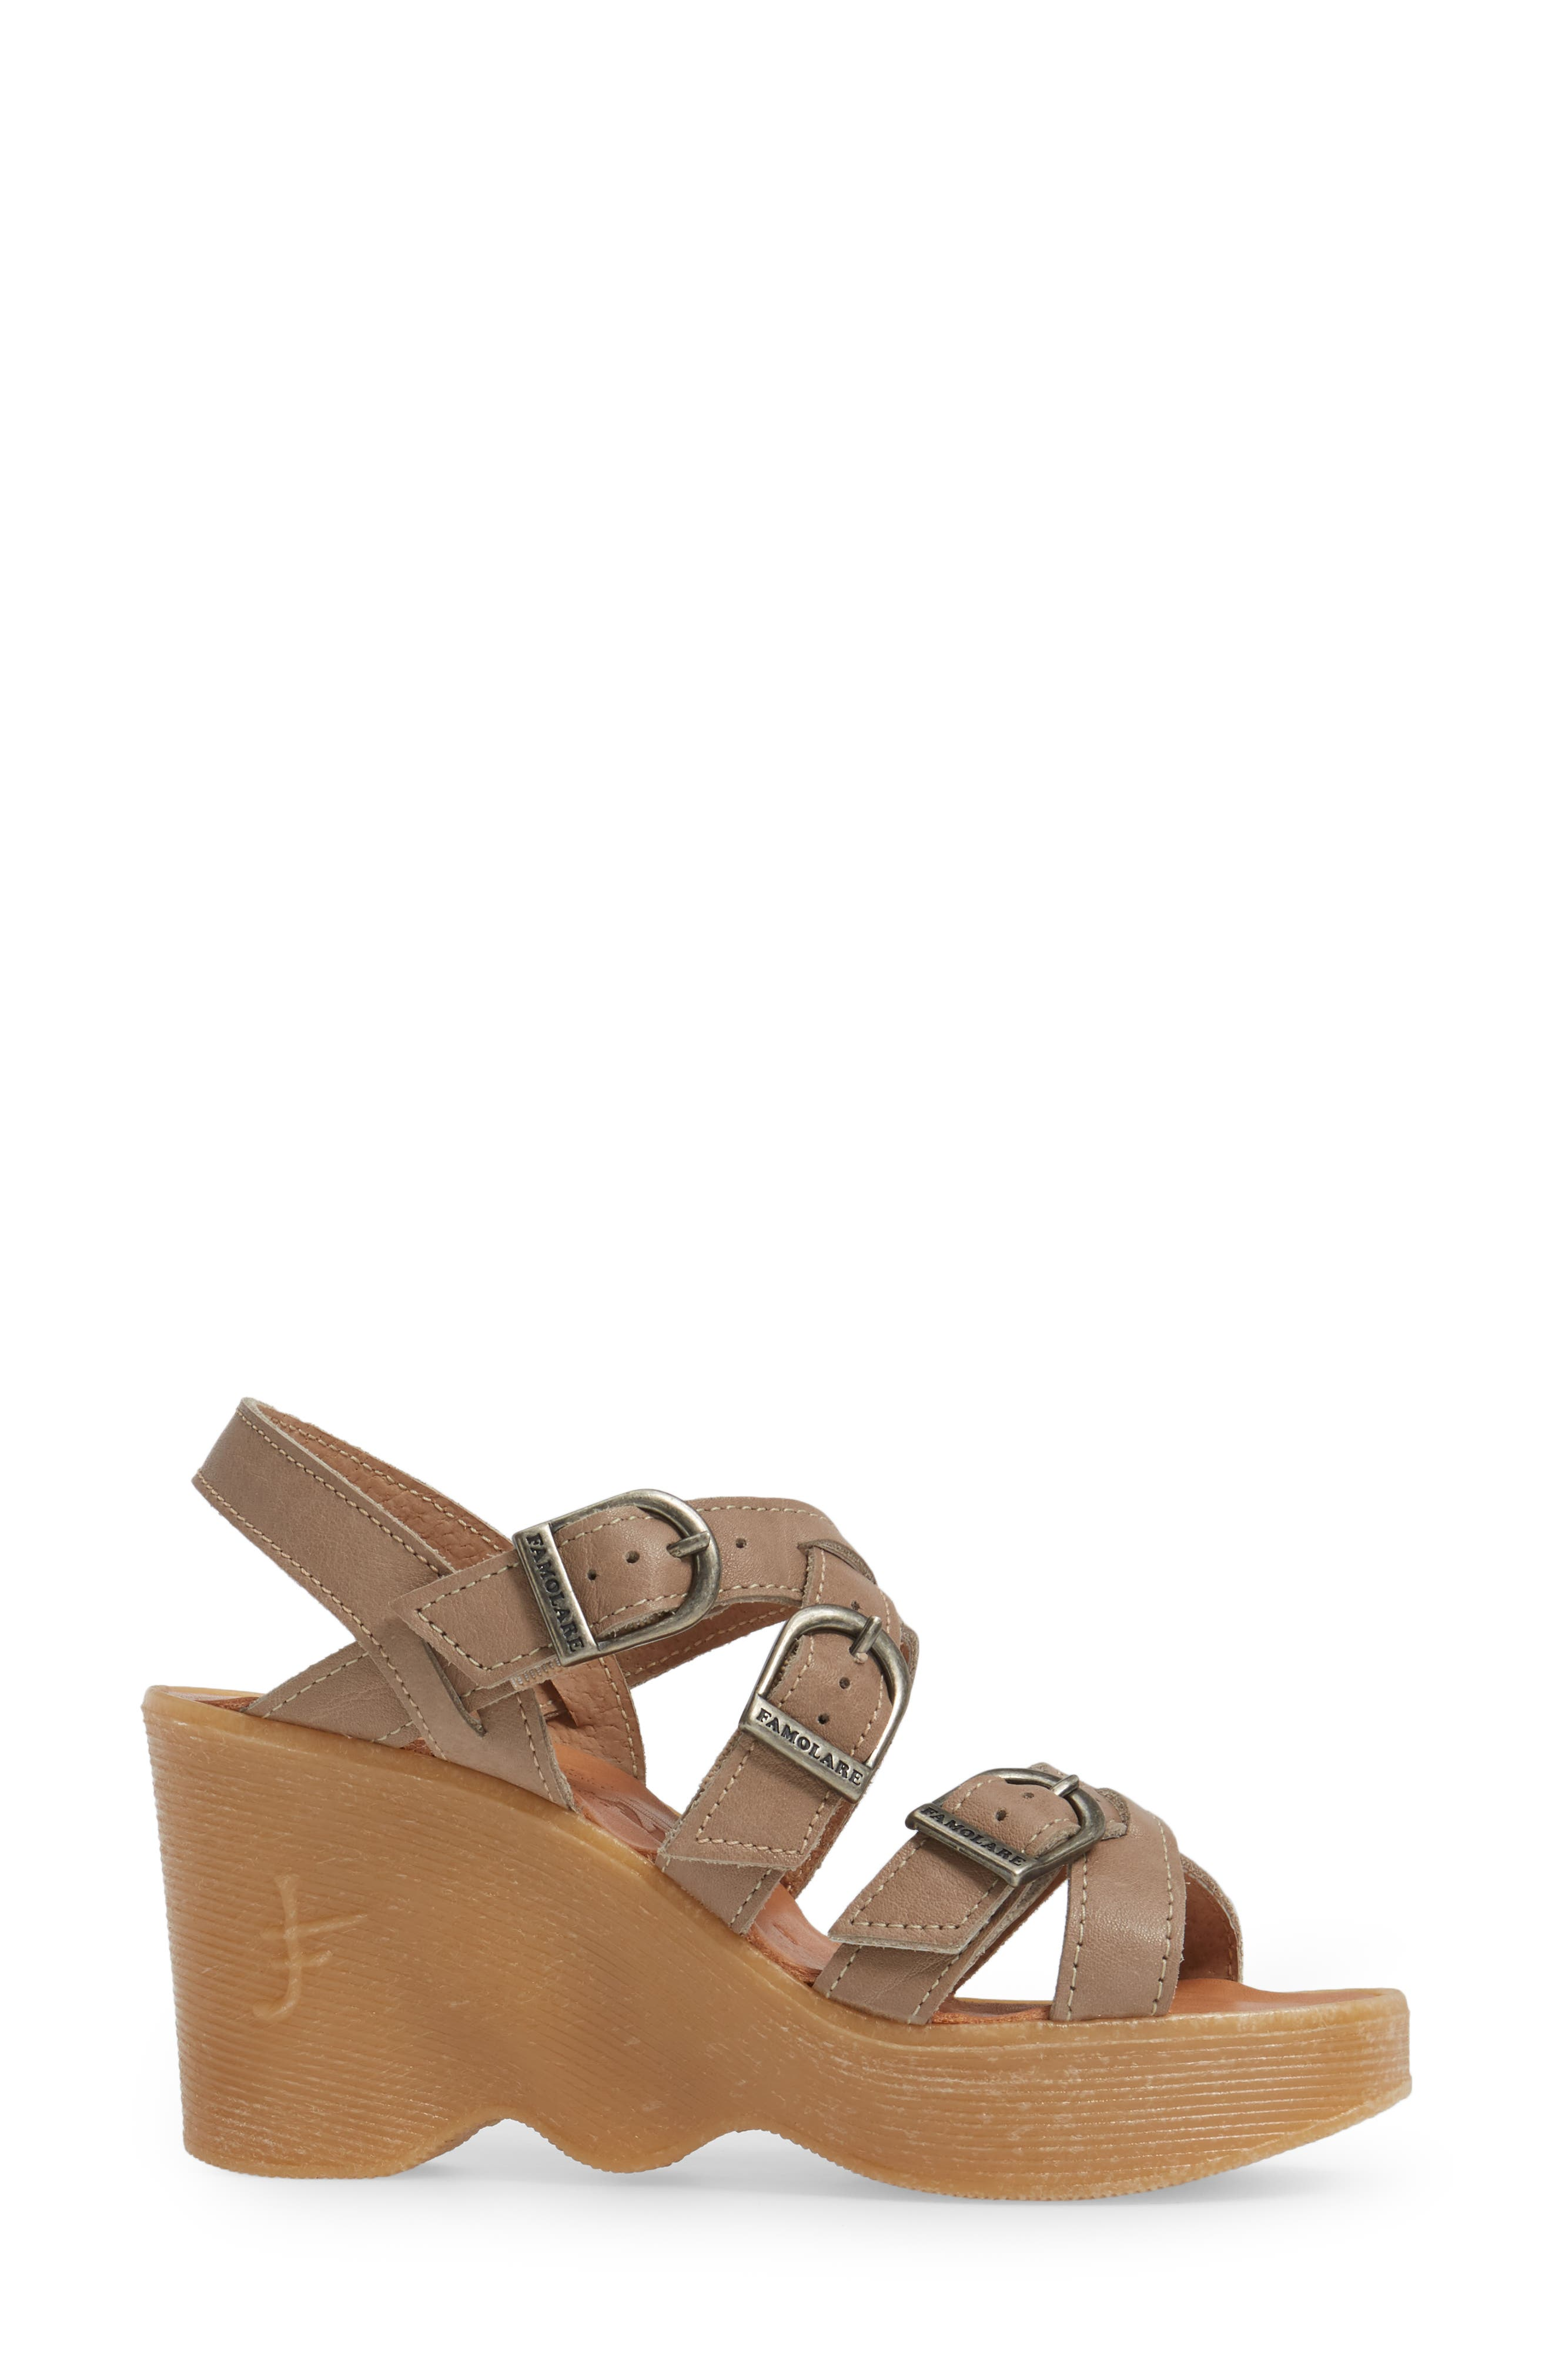 Buckle Up Wedge Sandal,                             Alternate thumbnail 3, color,                             SAND LEATHER